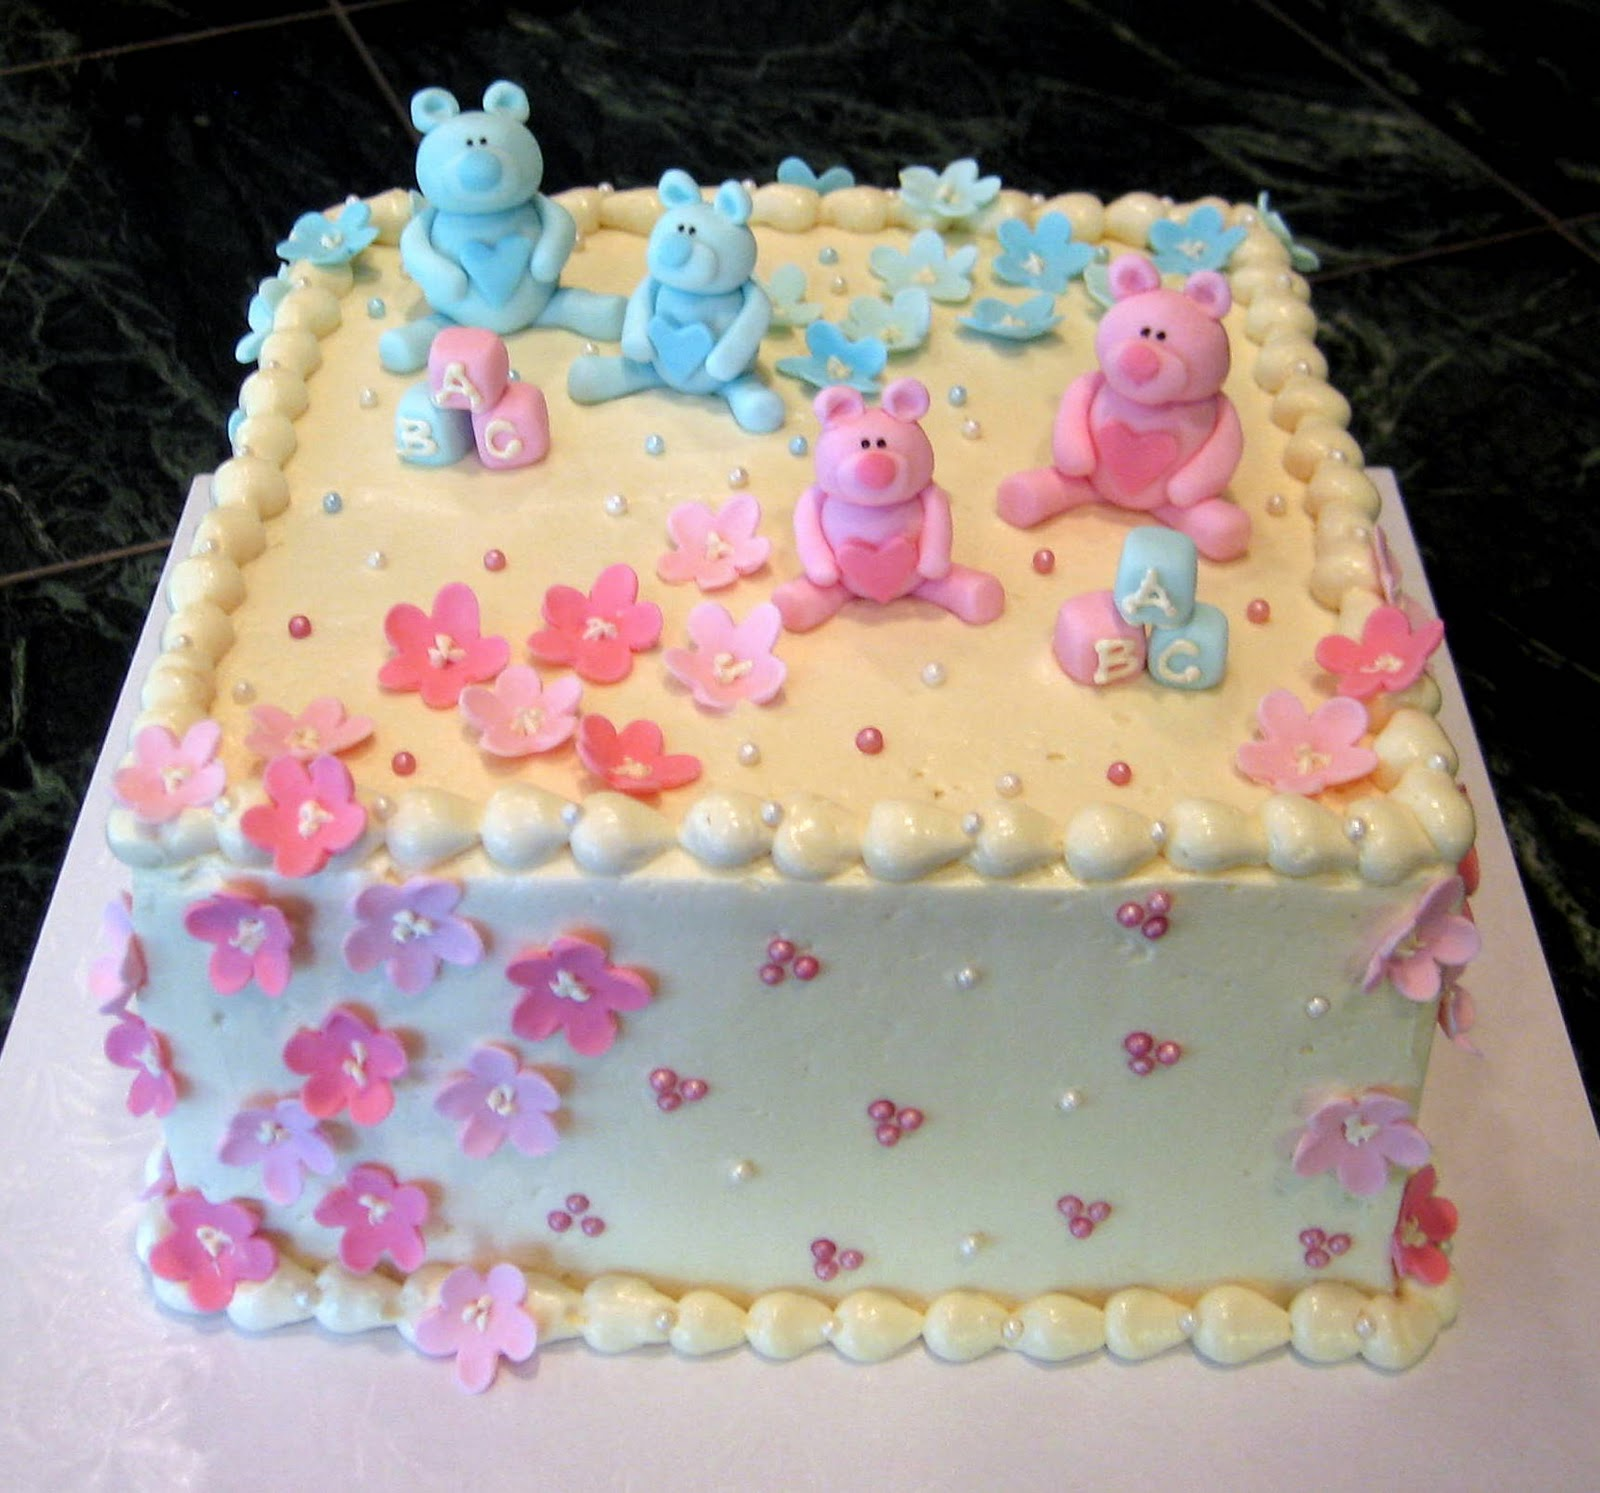 Living room decorating ideas baby shower cake ideas for a for Baby shower cake decoration ideas